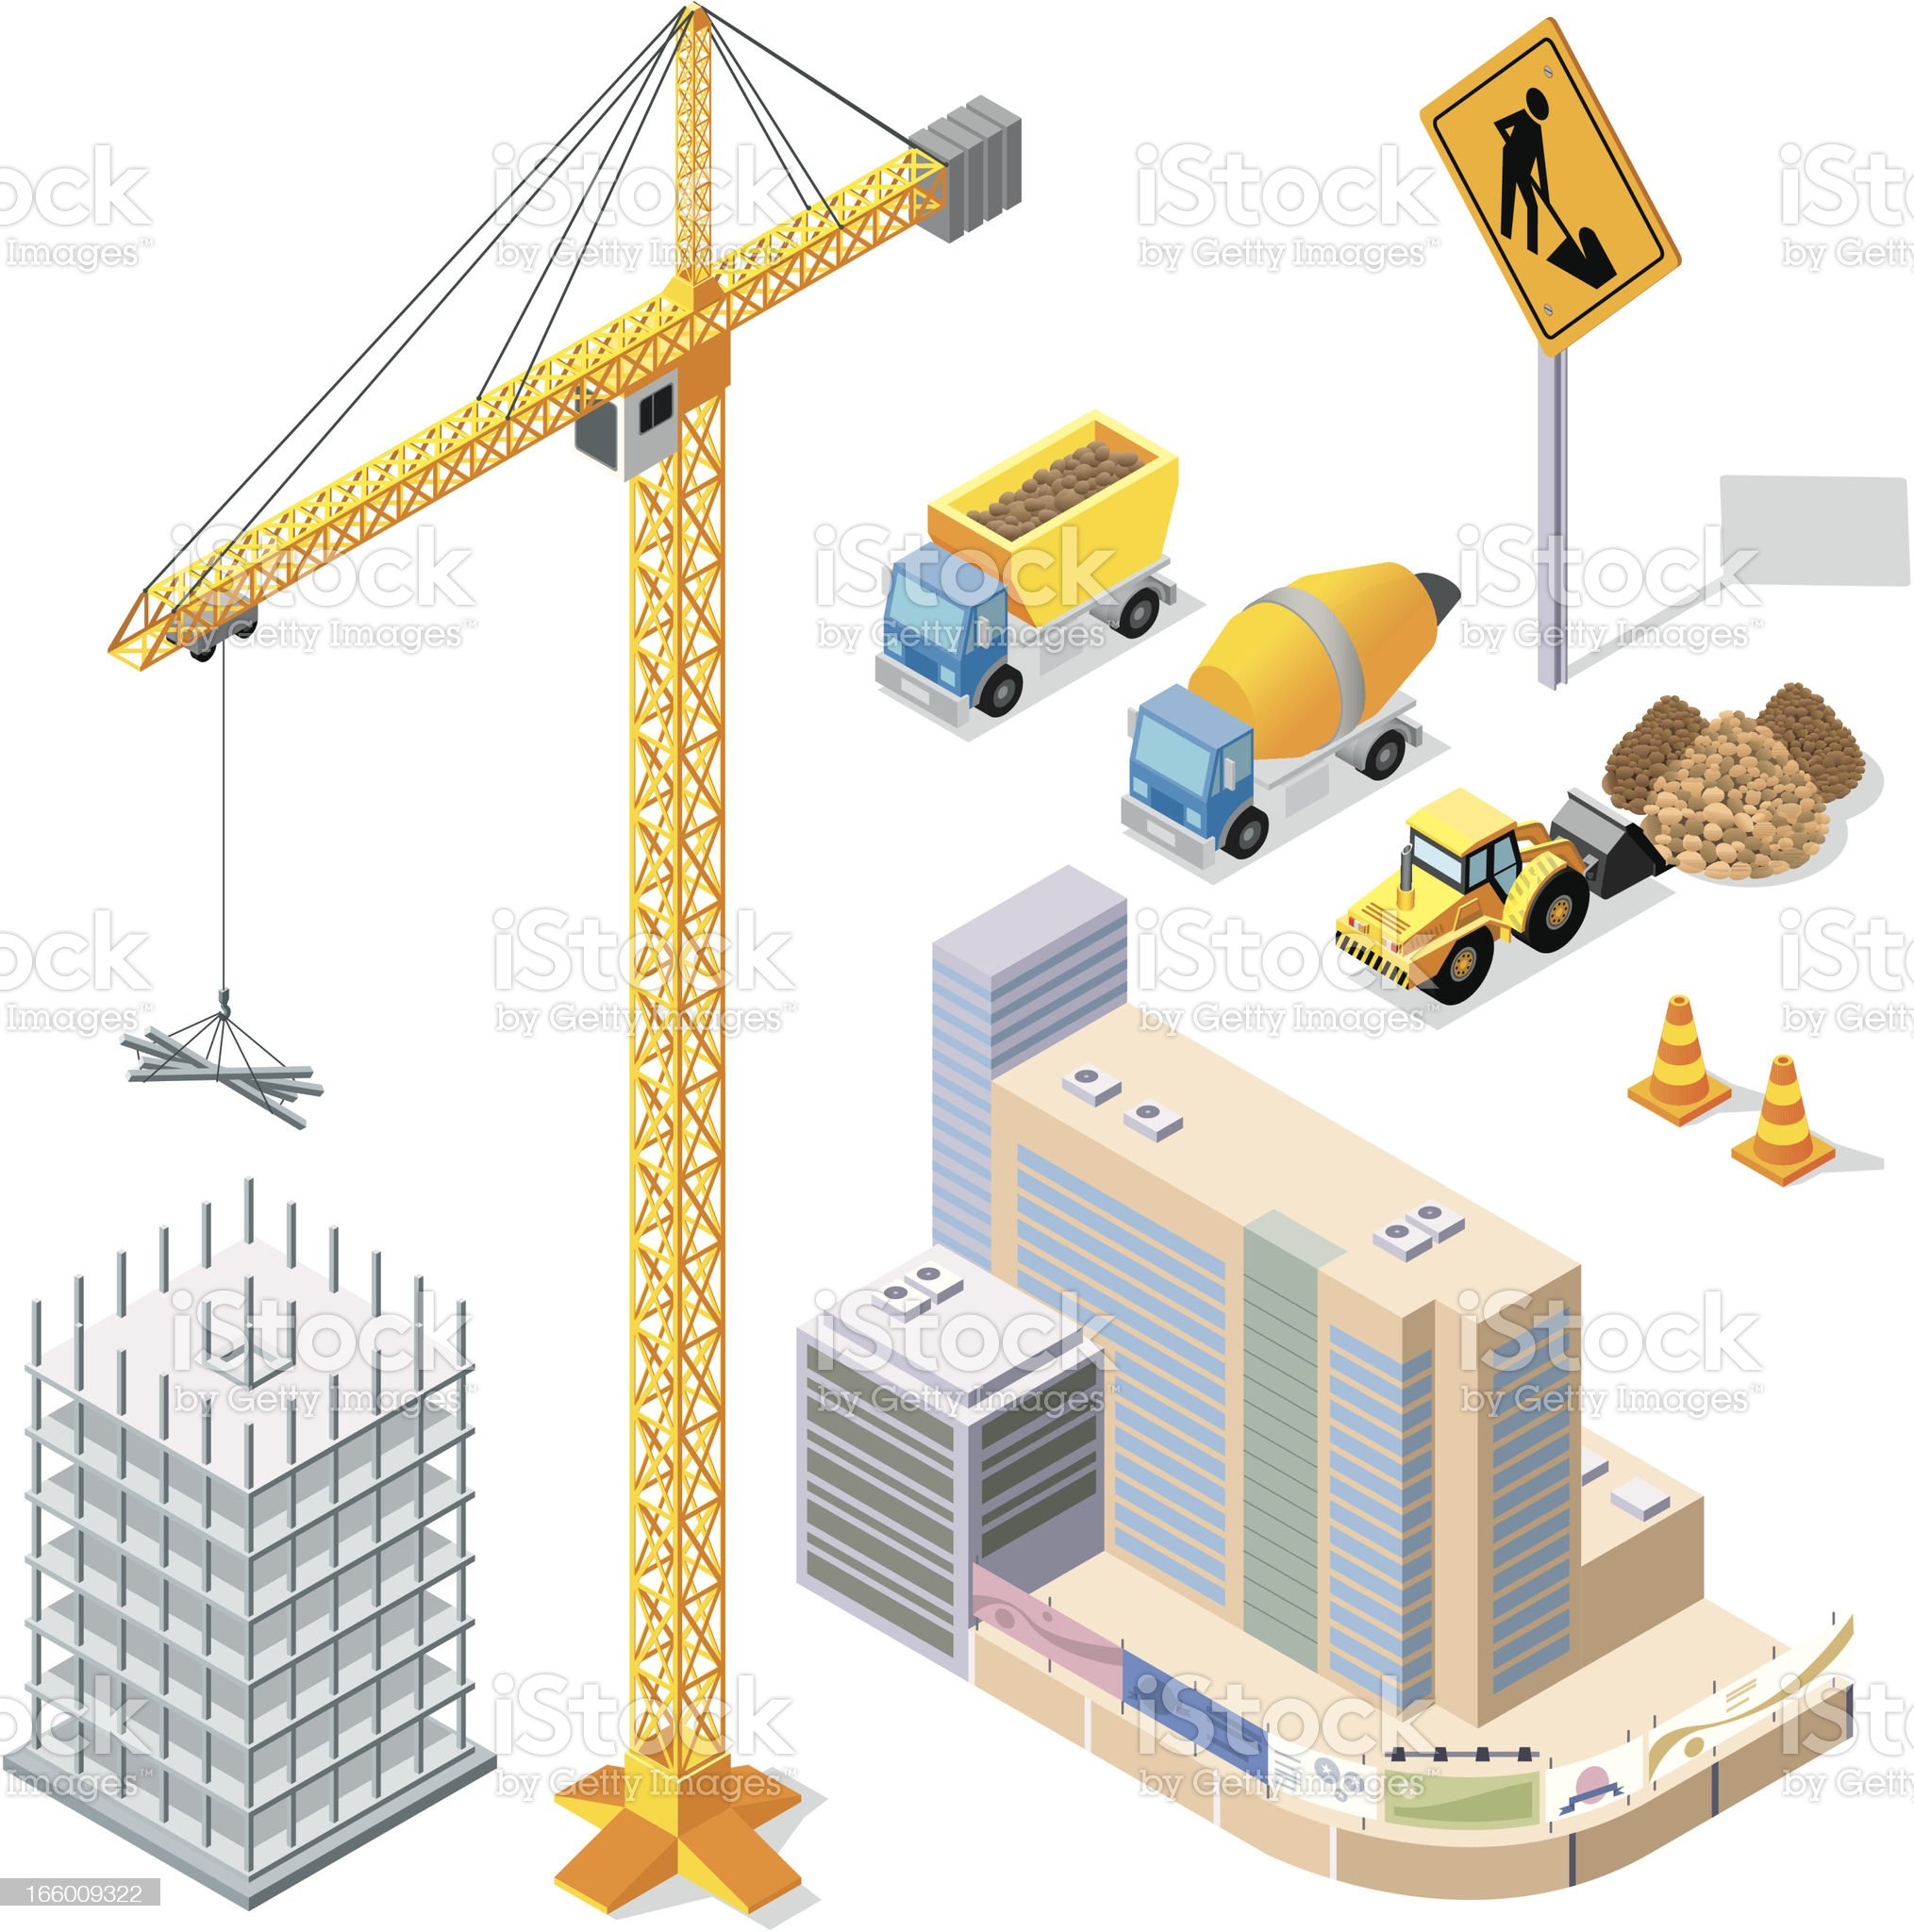 Vector illustration of construction elements royalty-free stock vector art